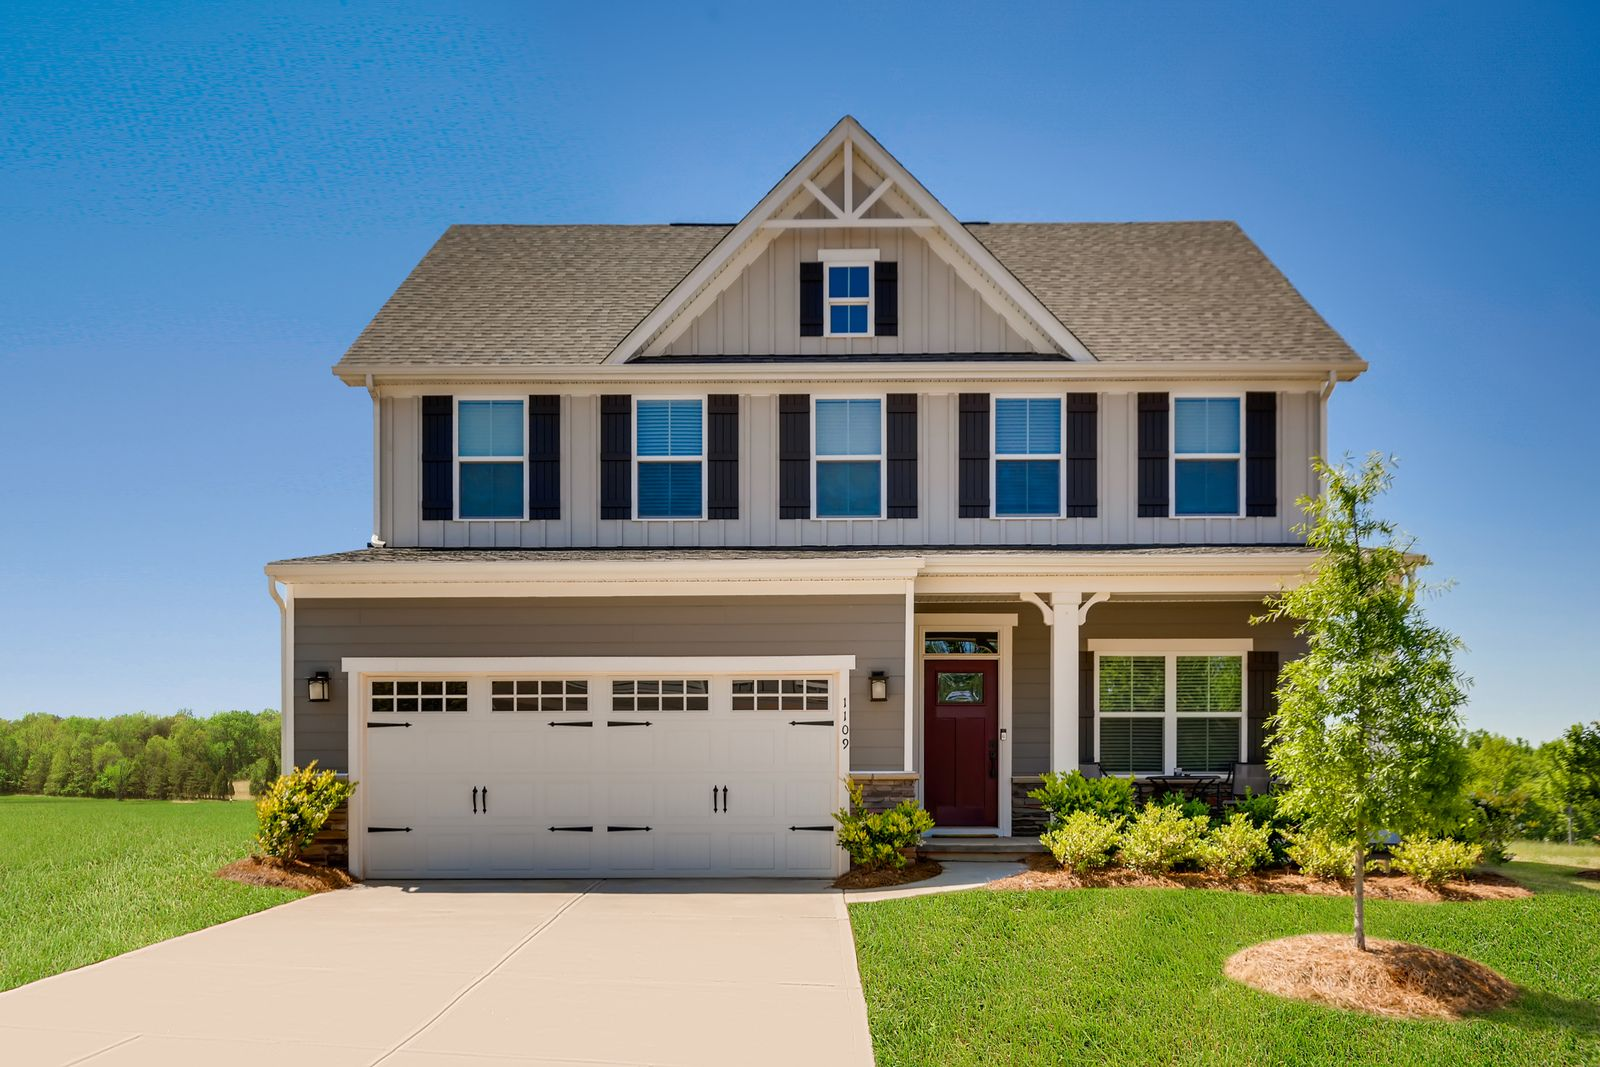 WELCOME TO LAKE LINGANORE HAMPTONS IN NEW MARKET, MD:Live in the area's premier resort-style community. Own a new home in a wooded enclave backing to Lake Linganore and near top rated schools.Schedule your appointment today!